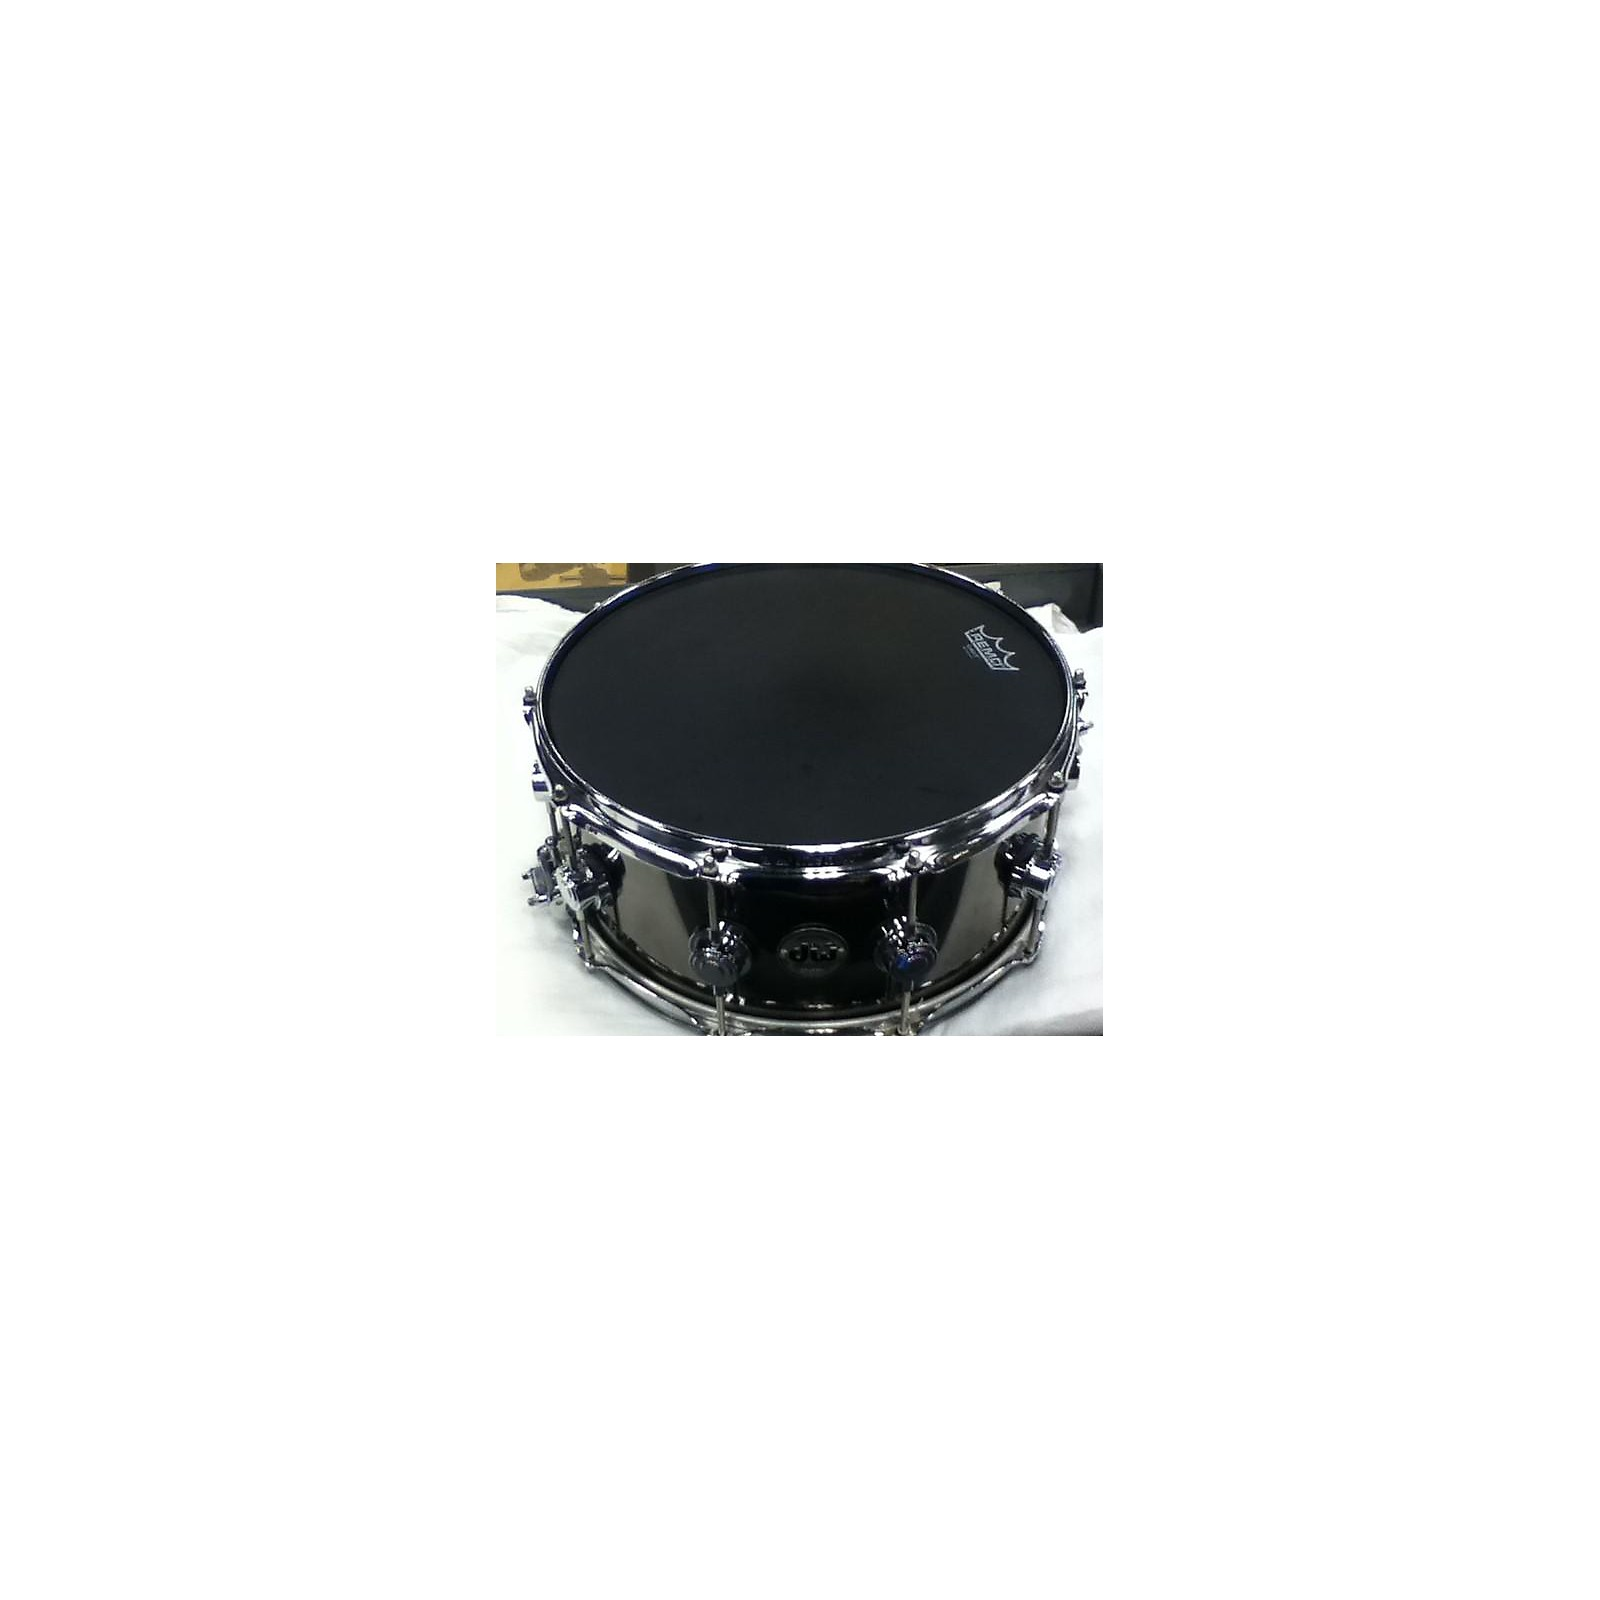 DW 14X6.5 Collector's Series Metal Snare Drum